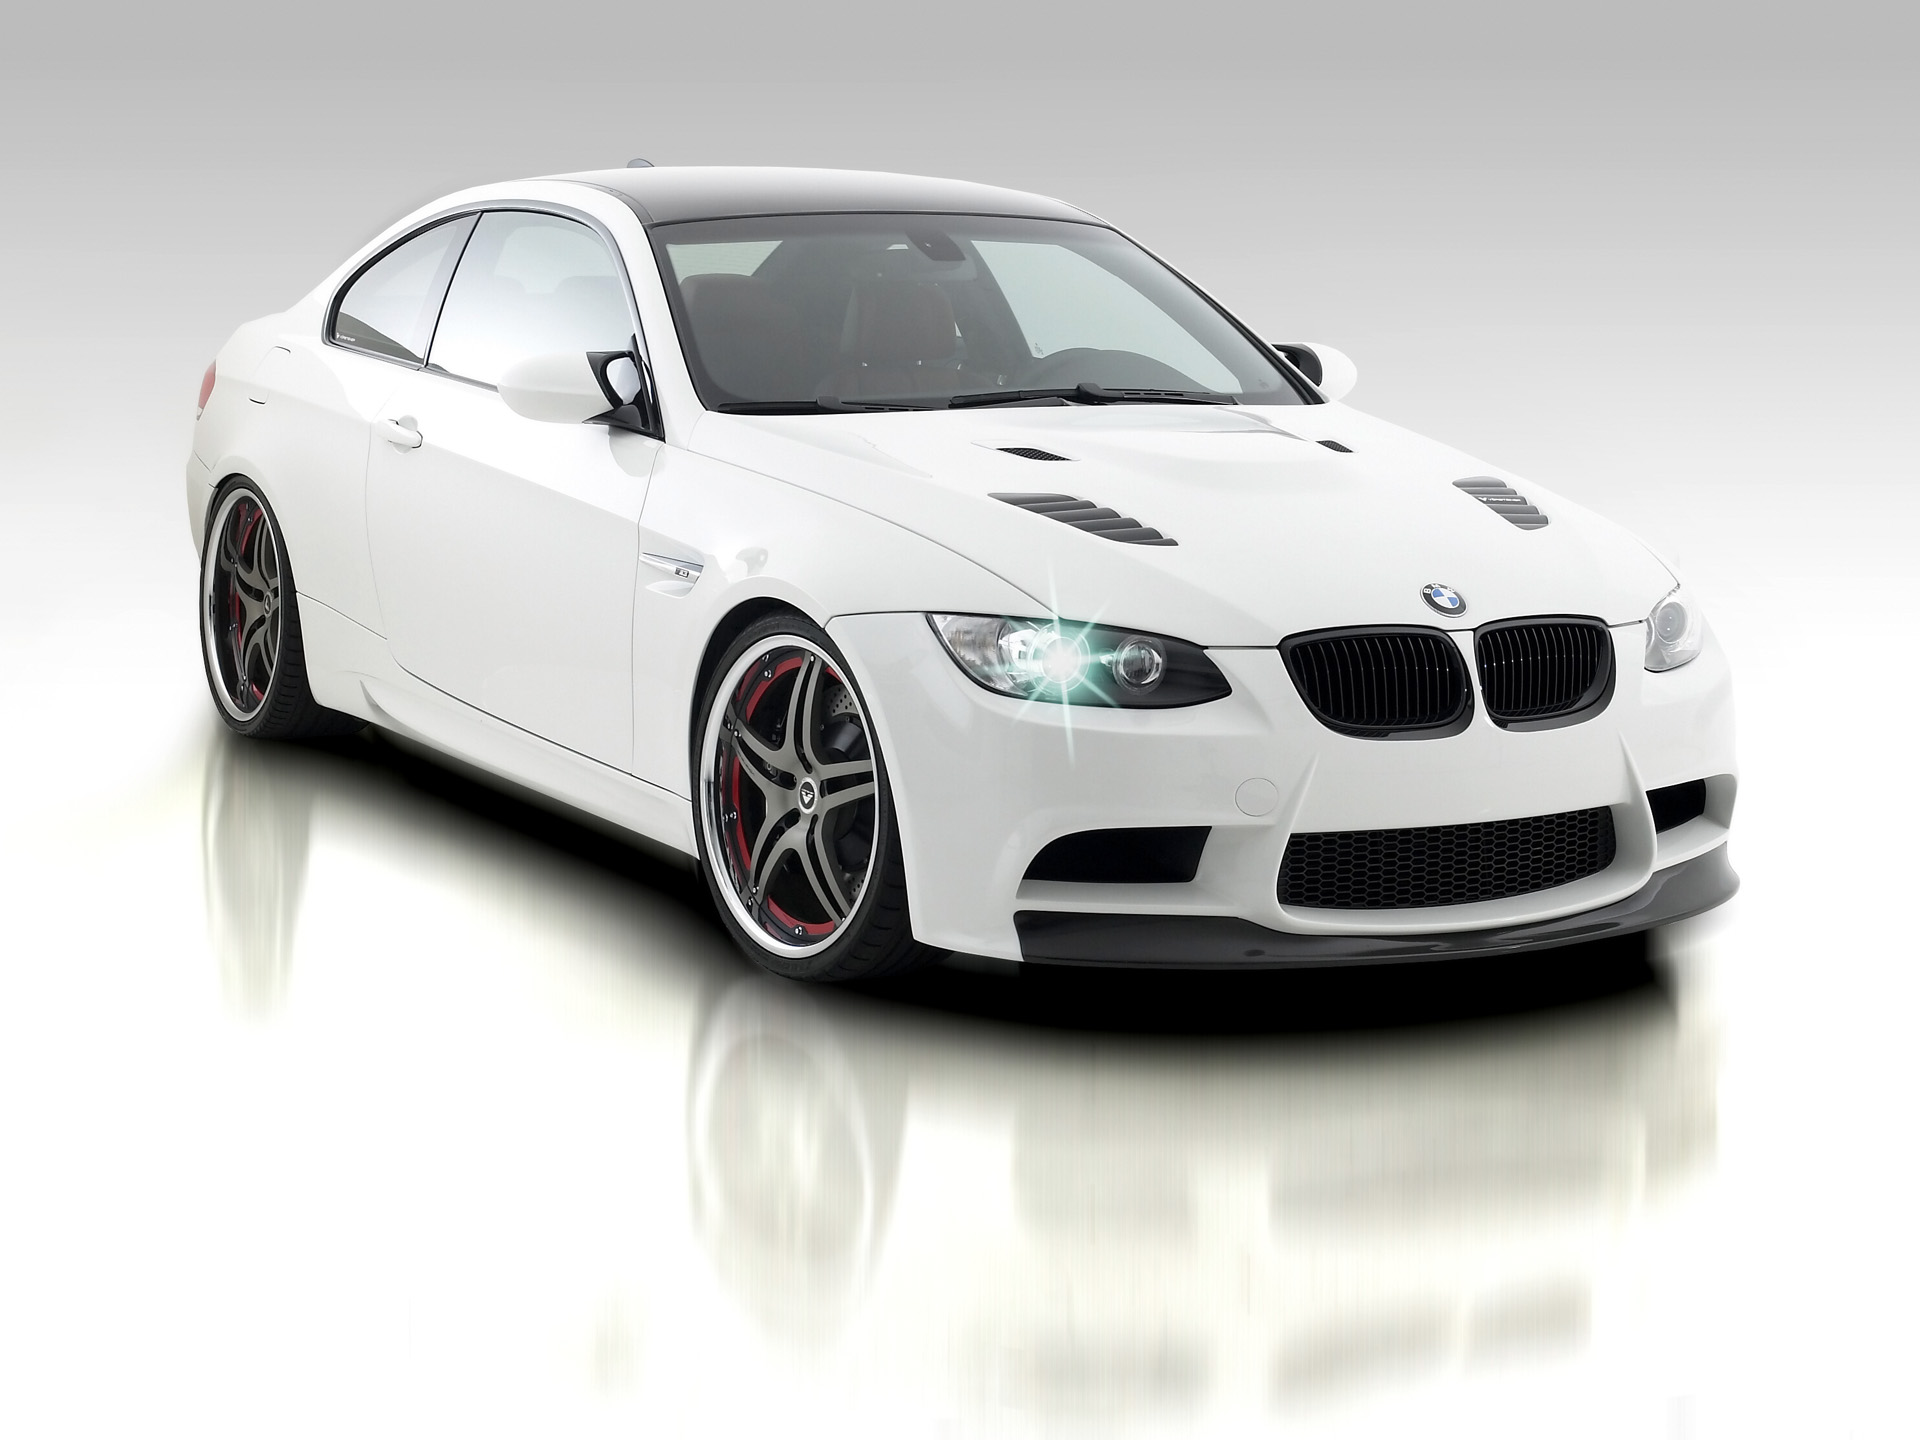 BMW ///M Images BMW M3 Wallpaper HD Wallpaper And Background Photos